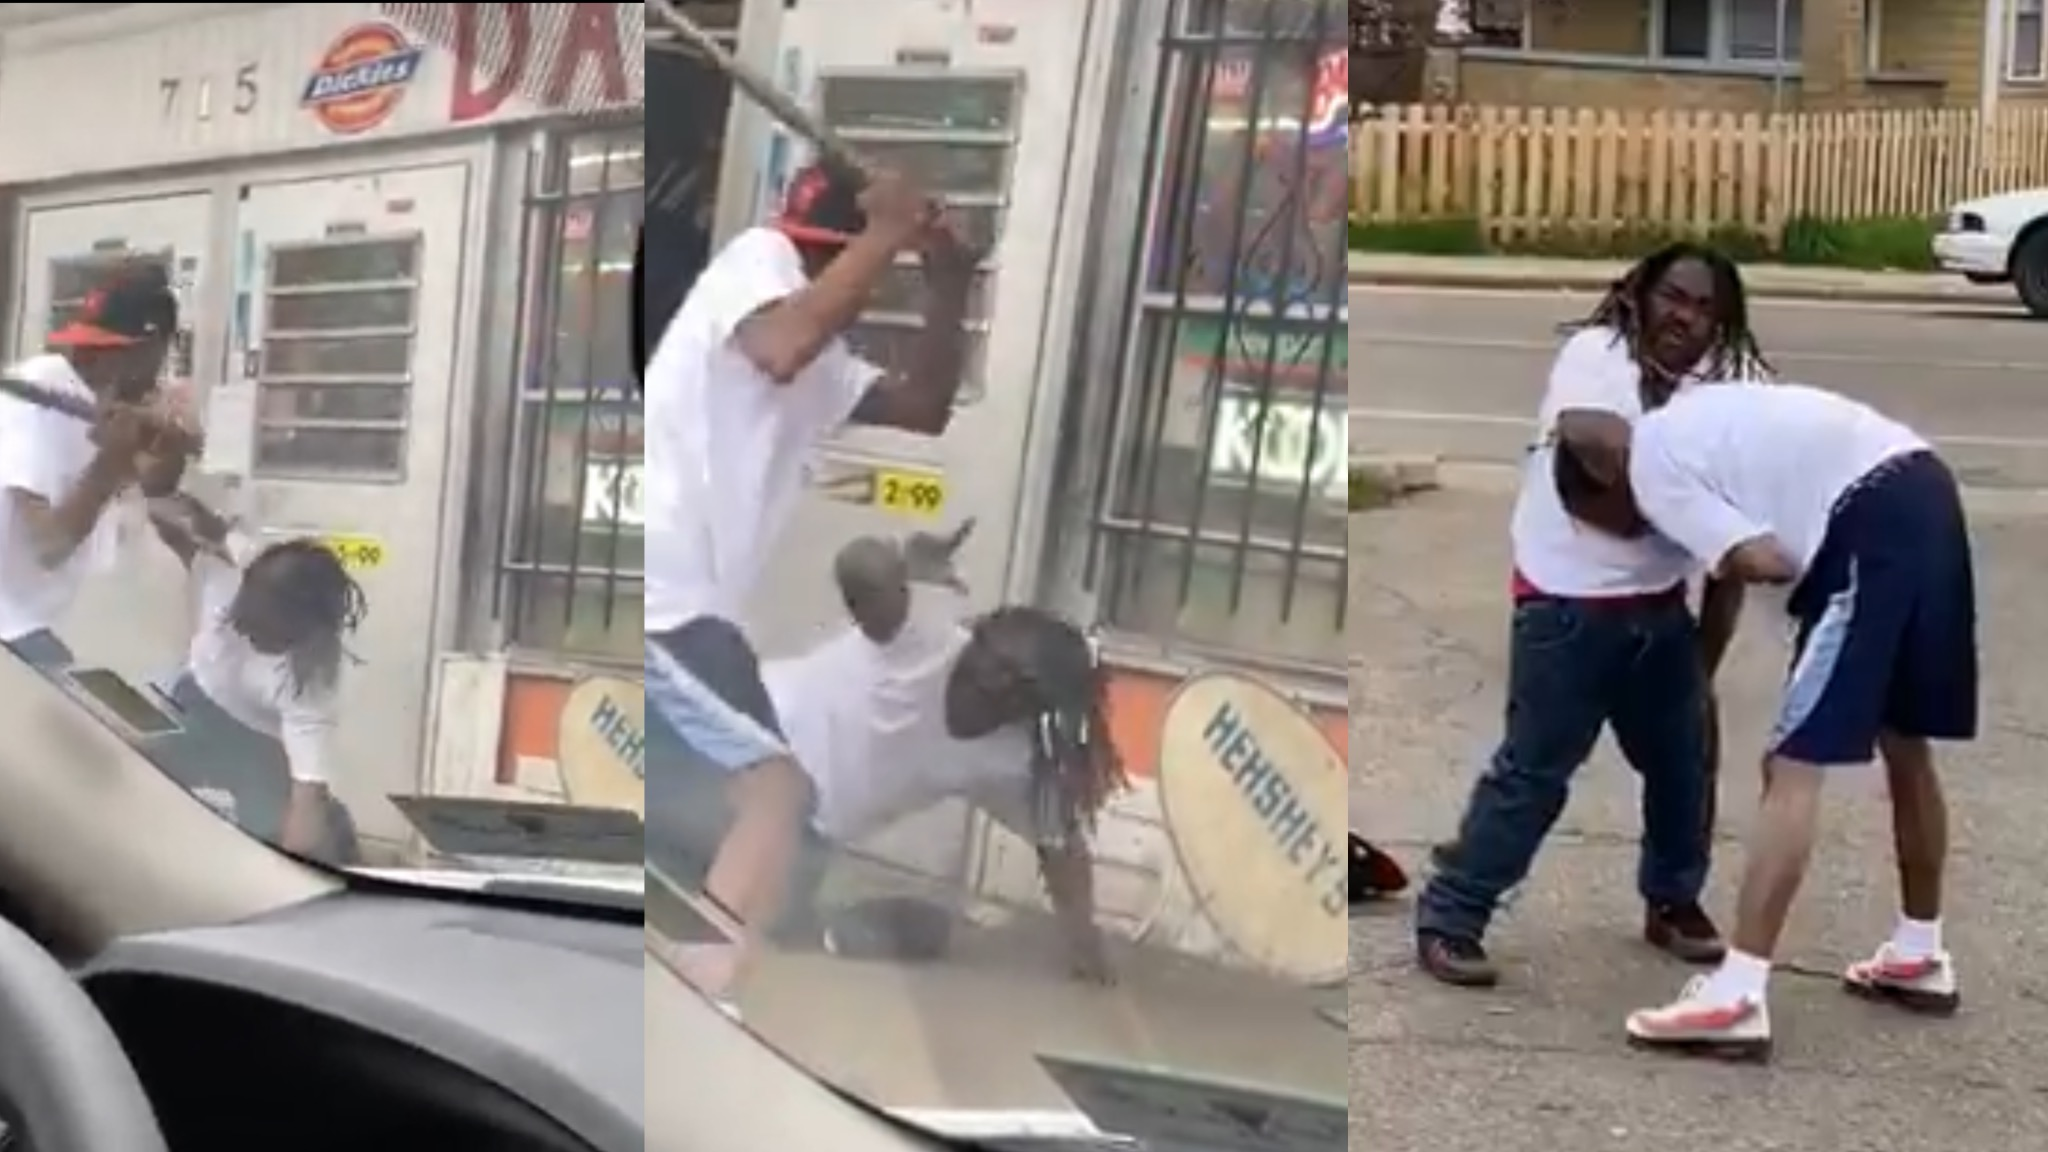 MAN BUSSED HIS OPP'S HEAD TO THE WHITE MEAT  WITH METAL STICK